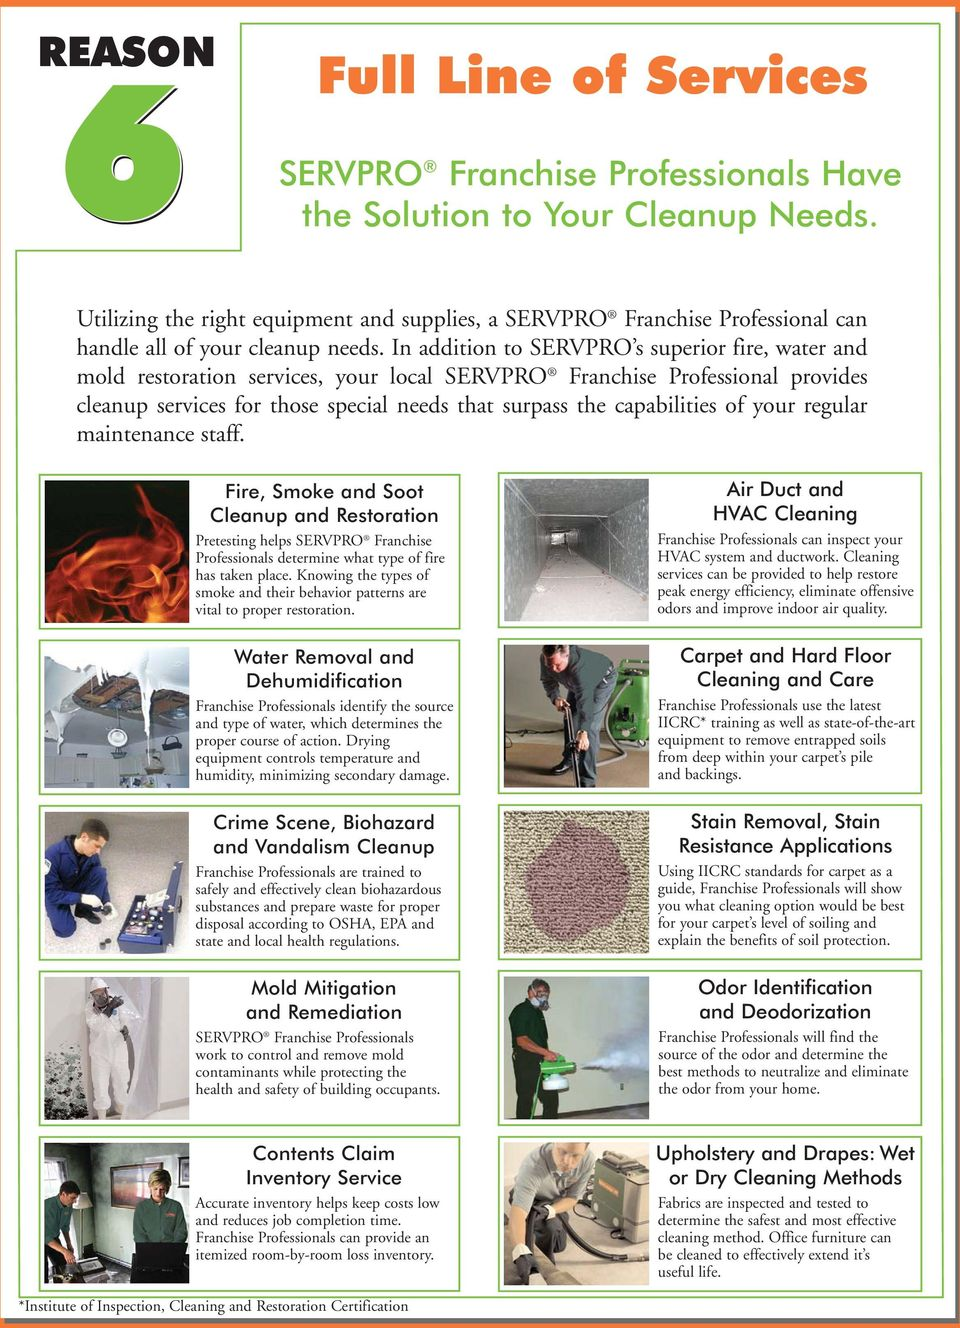 In addition to SERVPRO s superior fire, water and mold restoration services, your local SERVPRO Franchise Professional provides cleanup services for those special needs that surpass the capabilities